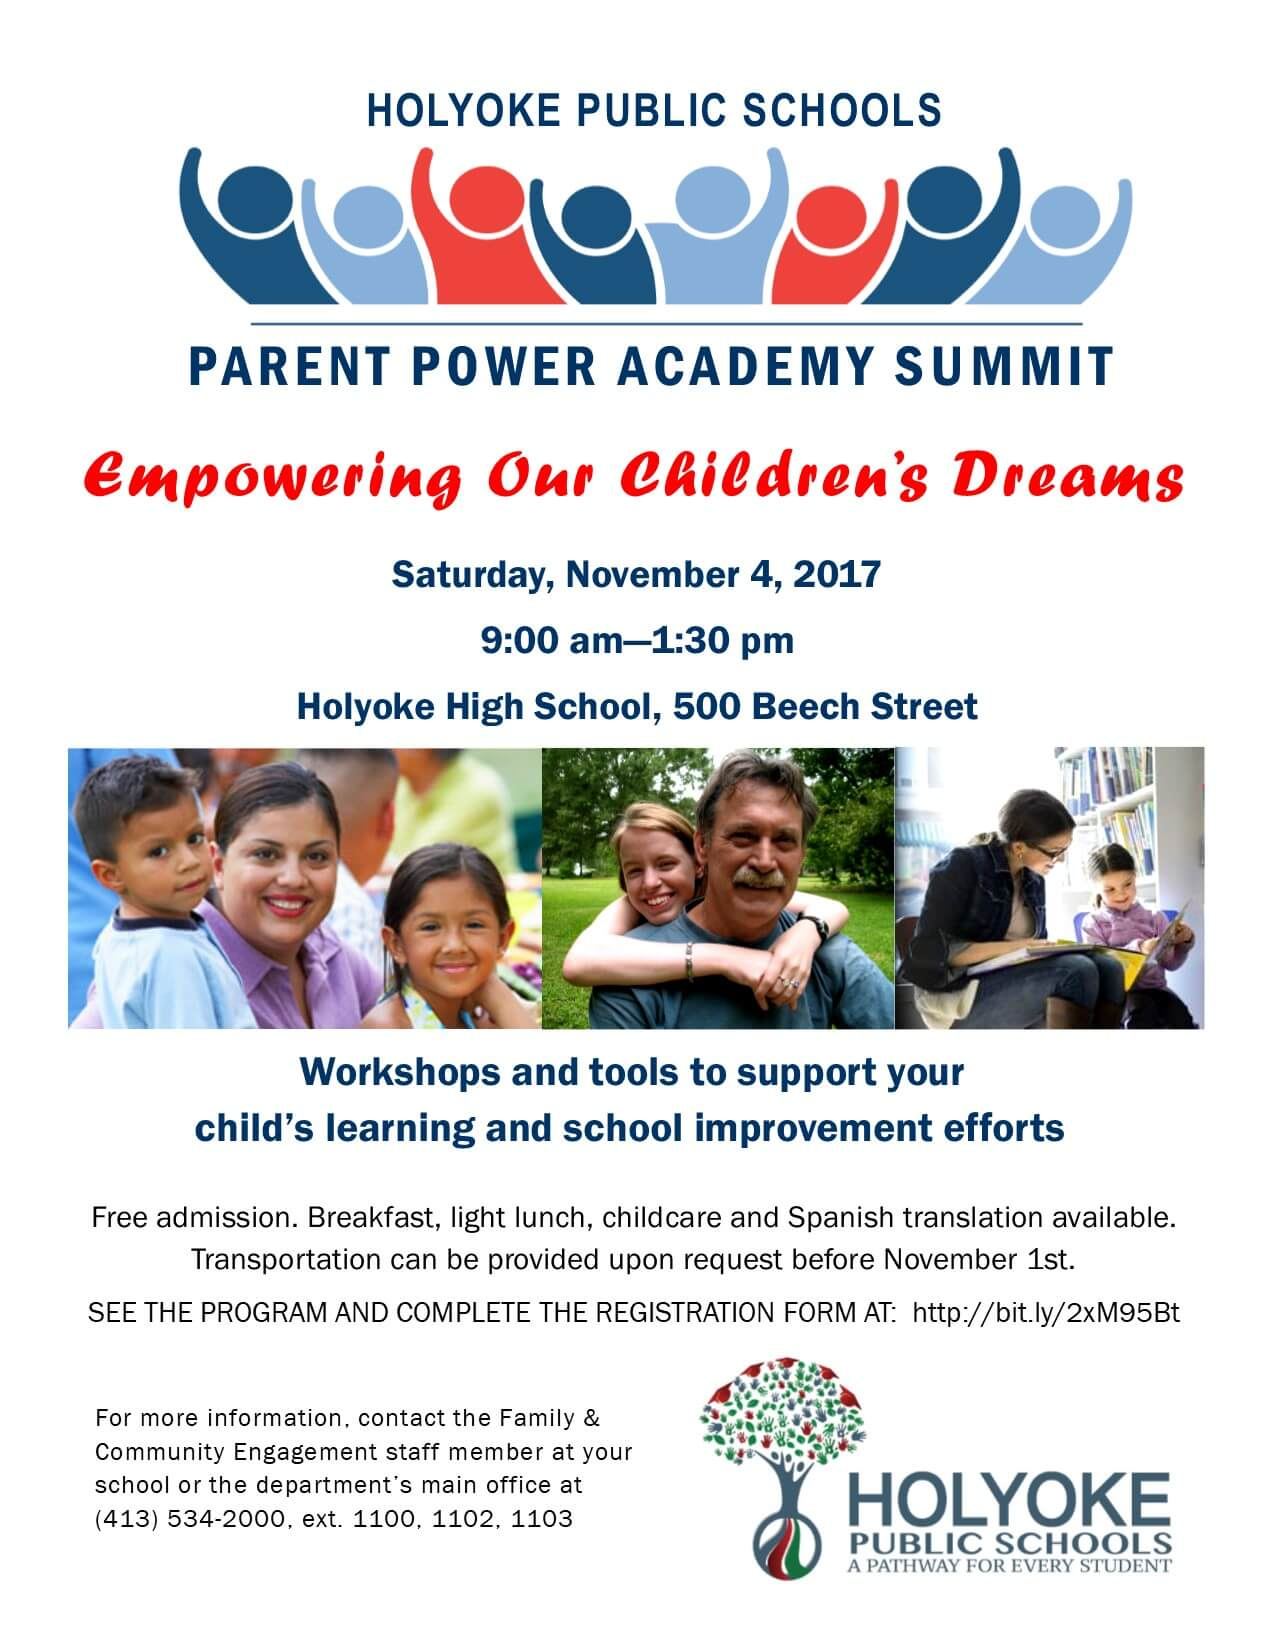 Parent Power Academy flyer